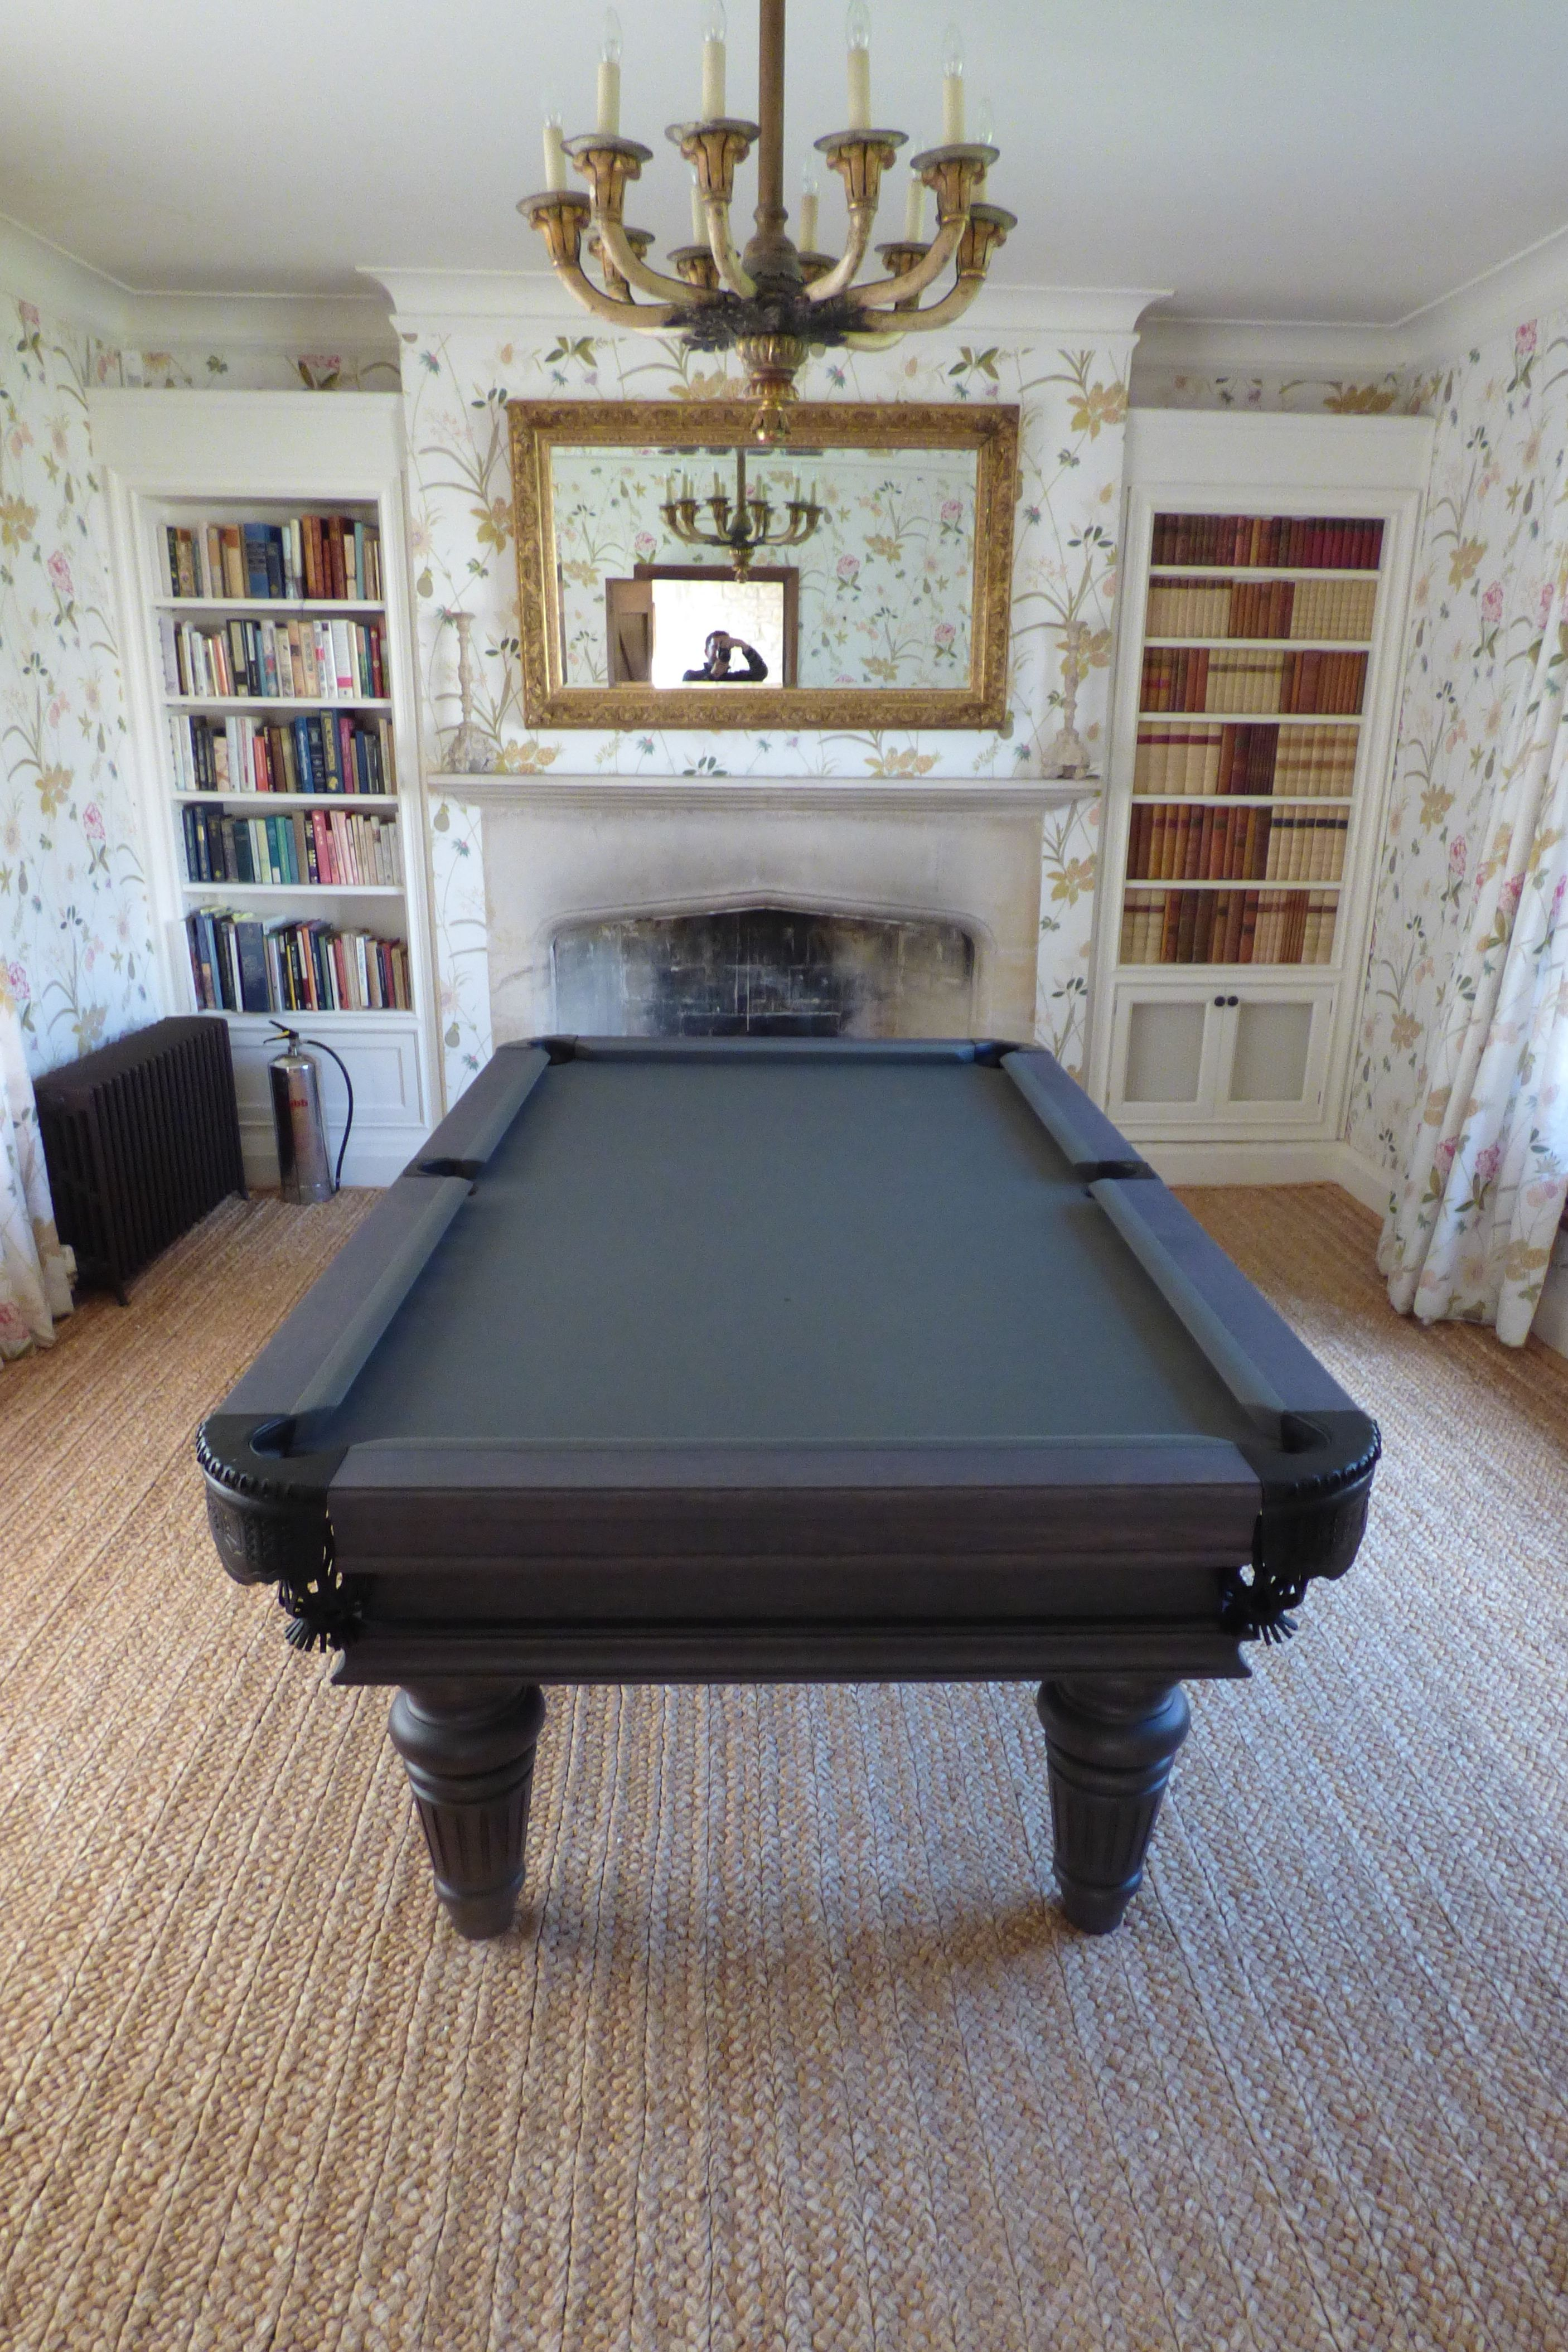 Traditional Pool or Snooker Table Pool table, Luxury